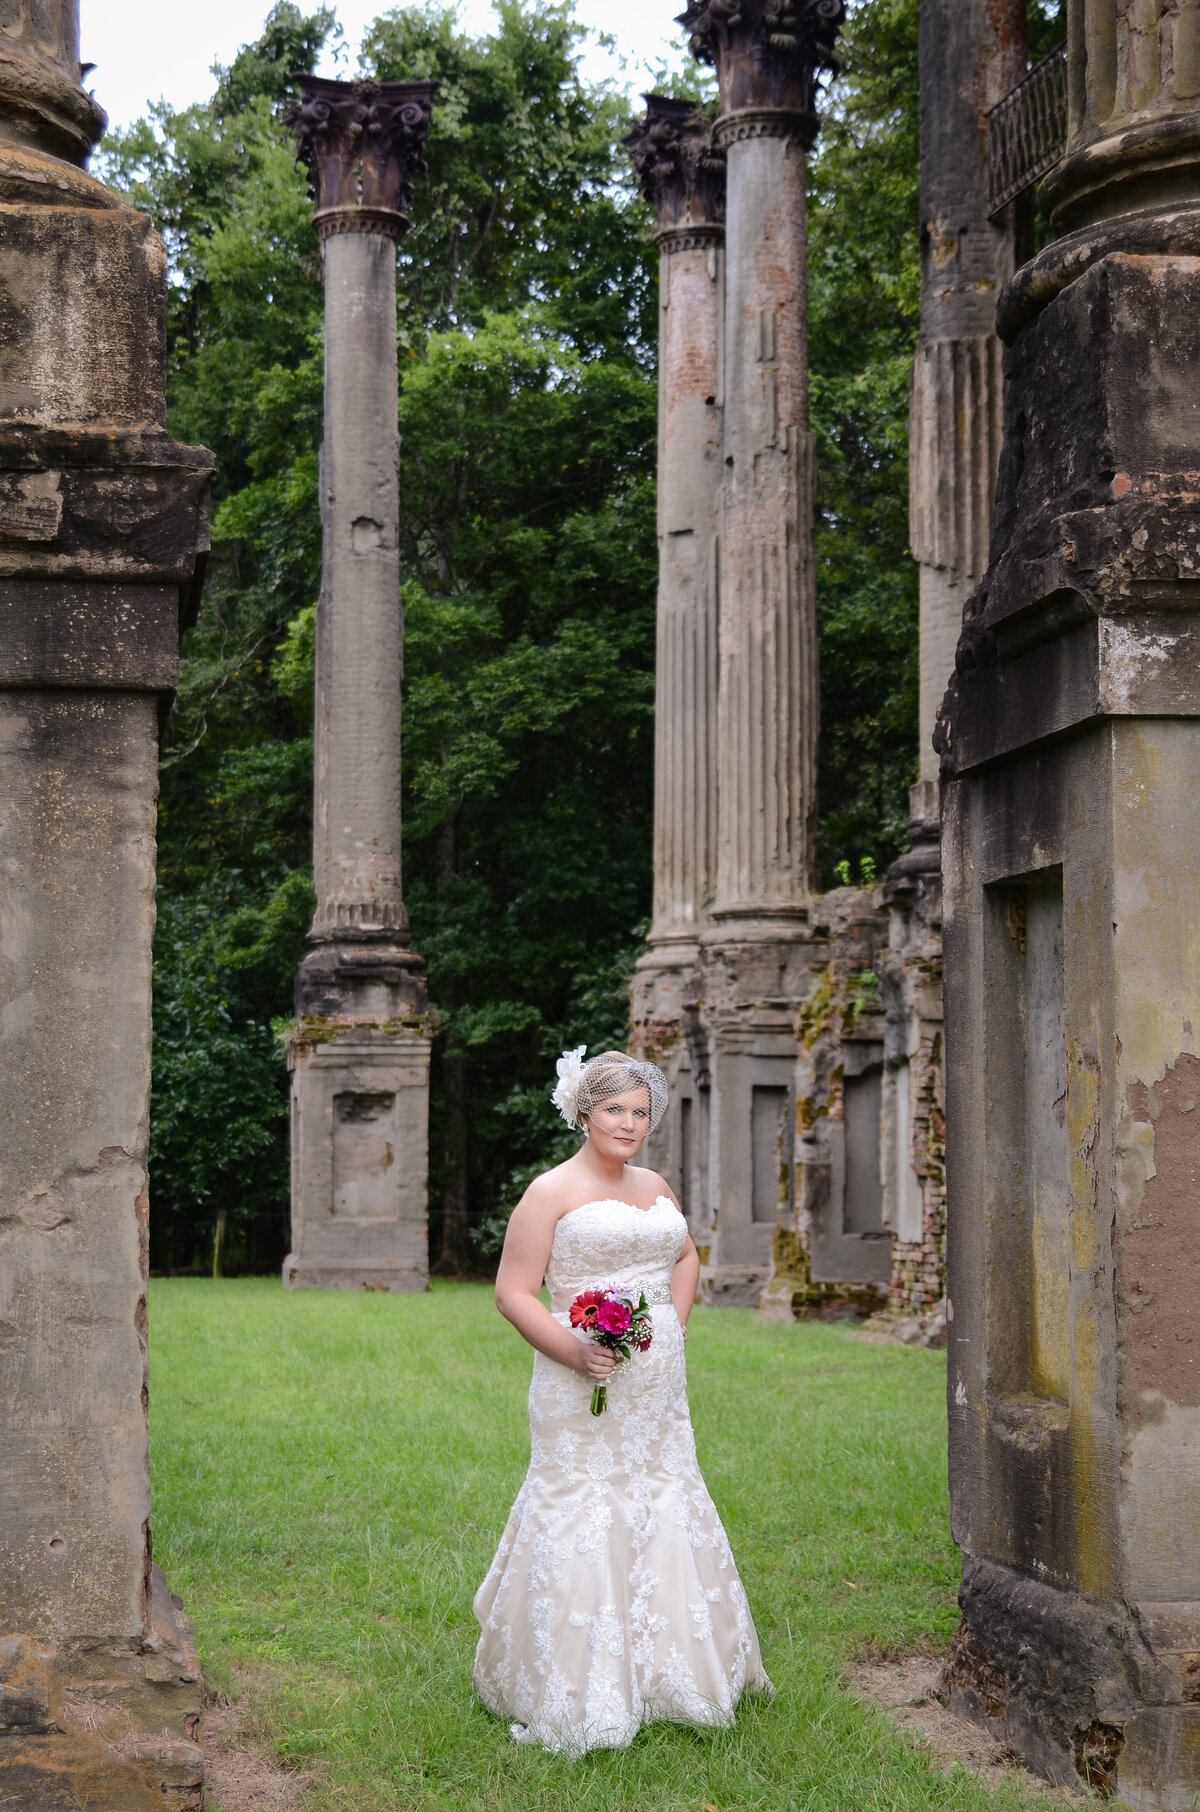 Beautiful bridal portrait photography: bride in vintage gown with birdcage veil among the ruins at Windsor plantation in MS